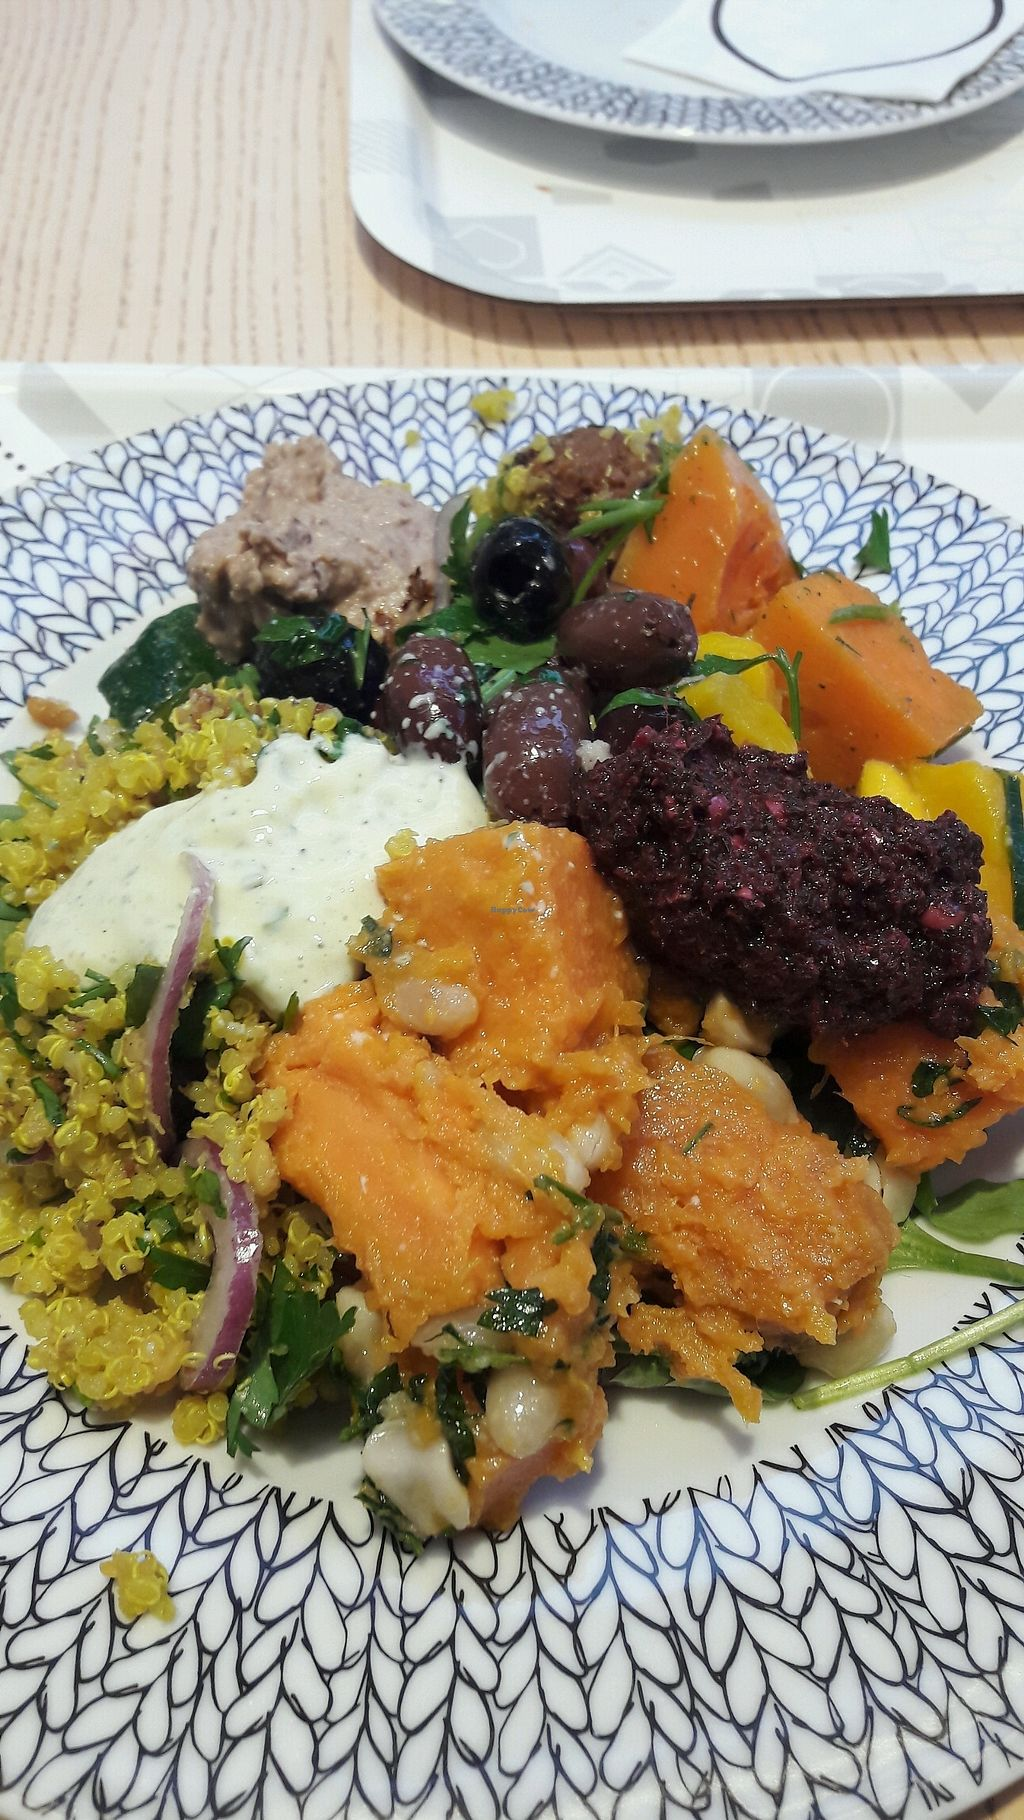 "Photo of Paulig Kulma  by <a href=""/members/profile/reissausta%20ja%20ruokaa"">reissausta ja ruokaa</a> <br/>Food from salad buffet <br/> December 22, 2017  - <a href='/contact/abuse/image/107284/338052'>Report</a>"